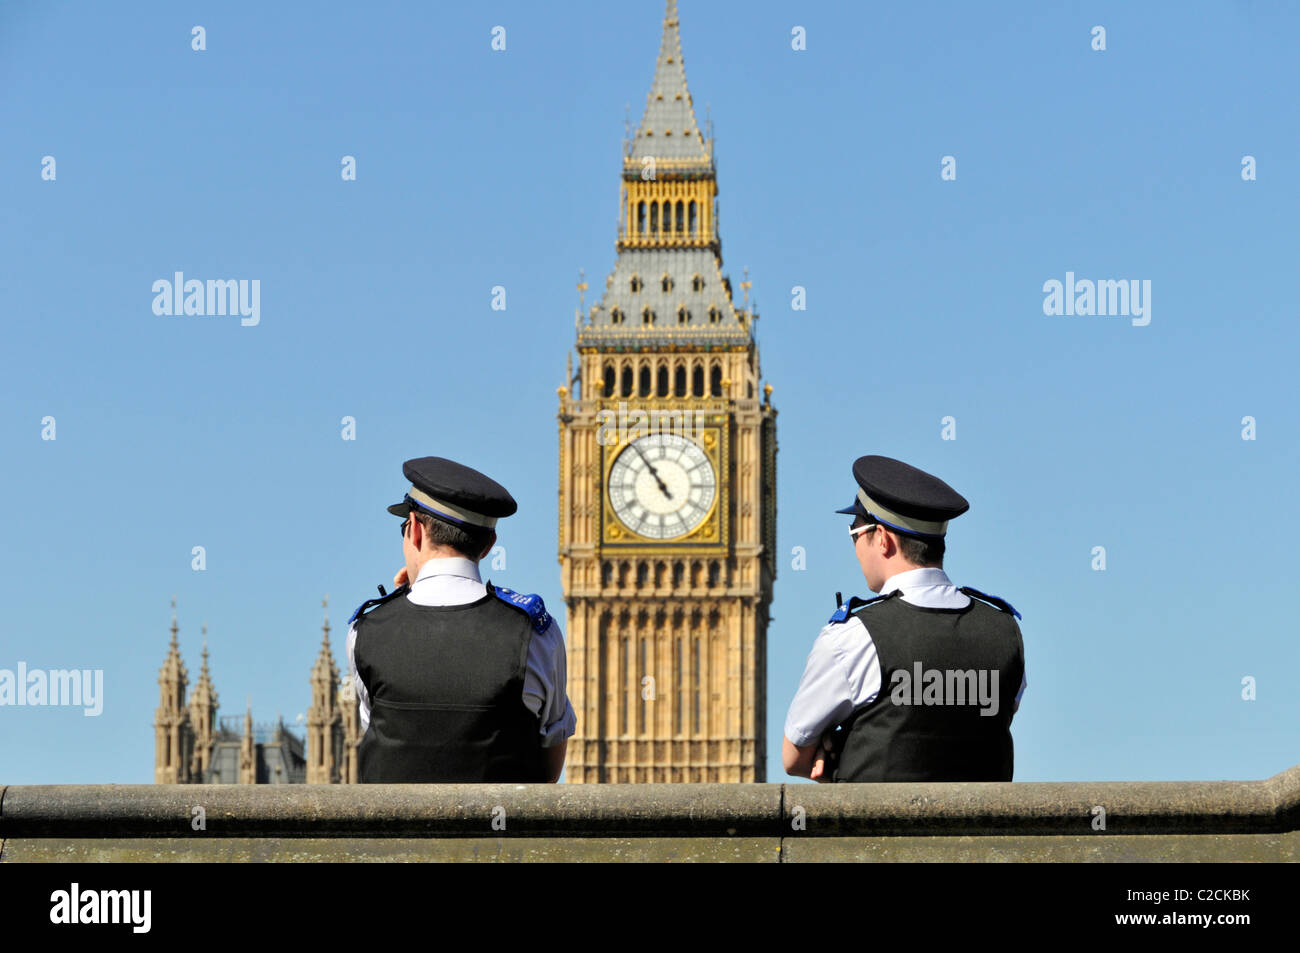 Two community support officers with Big Ben beyond - Stock Image